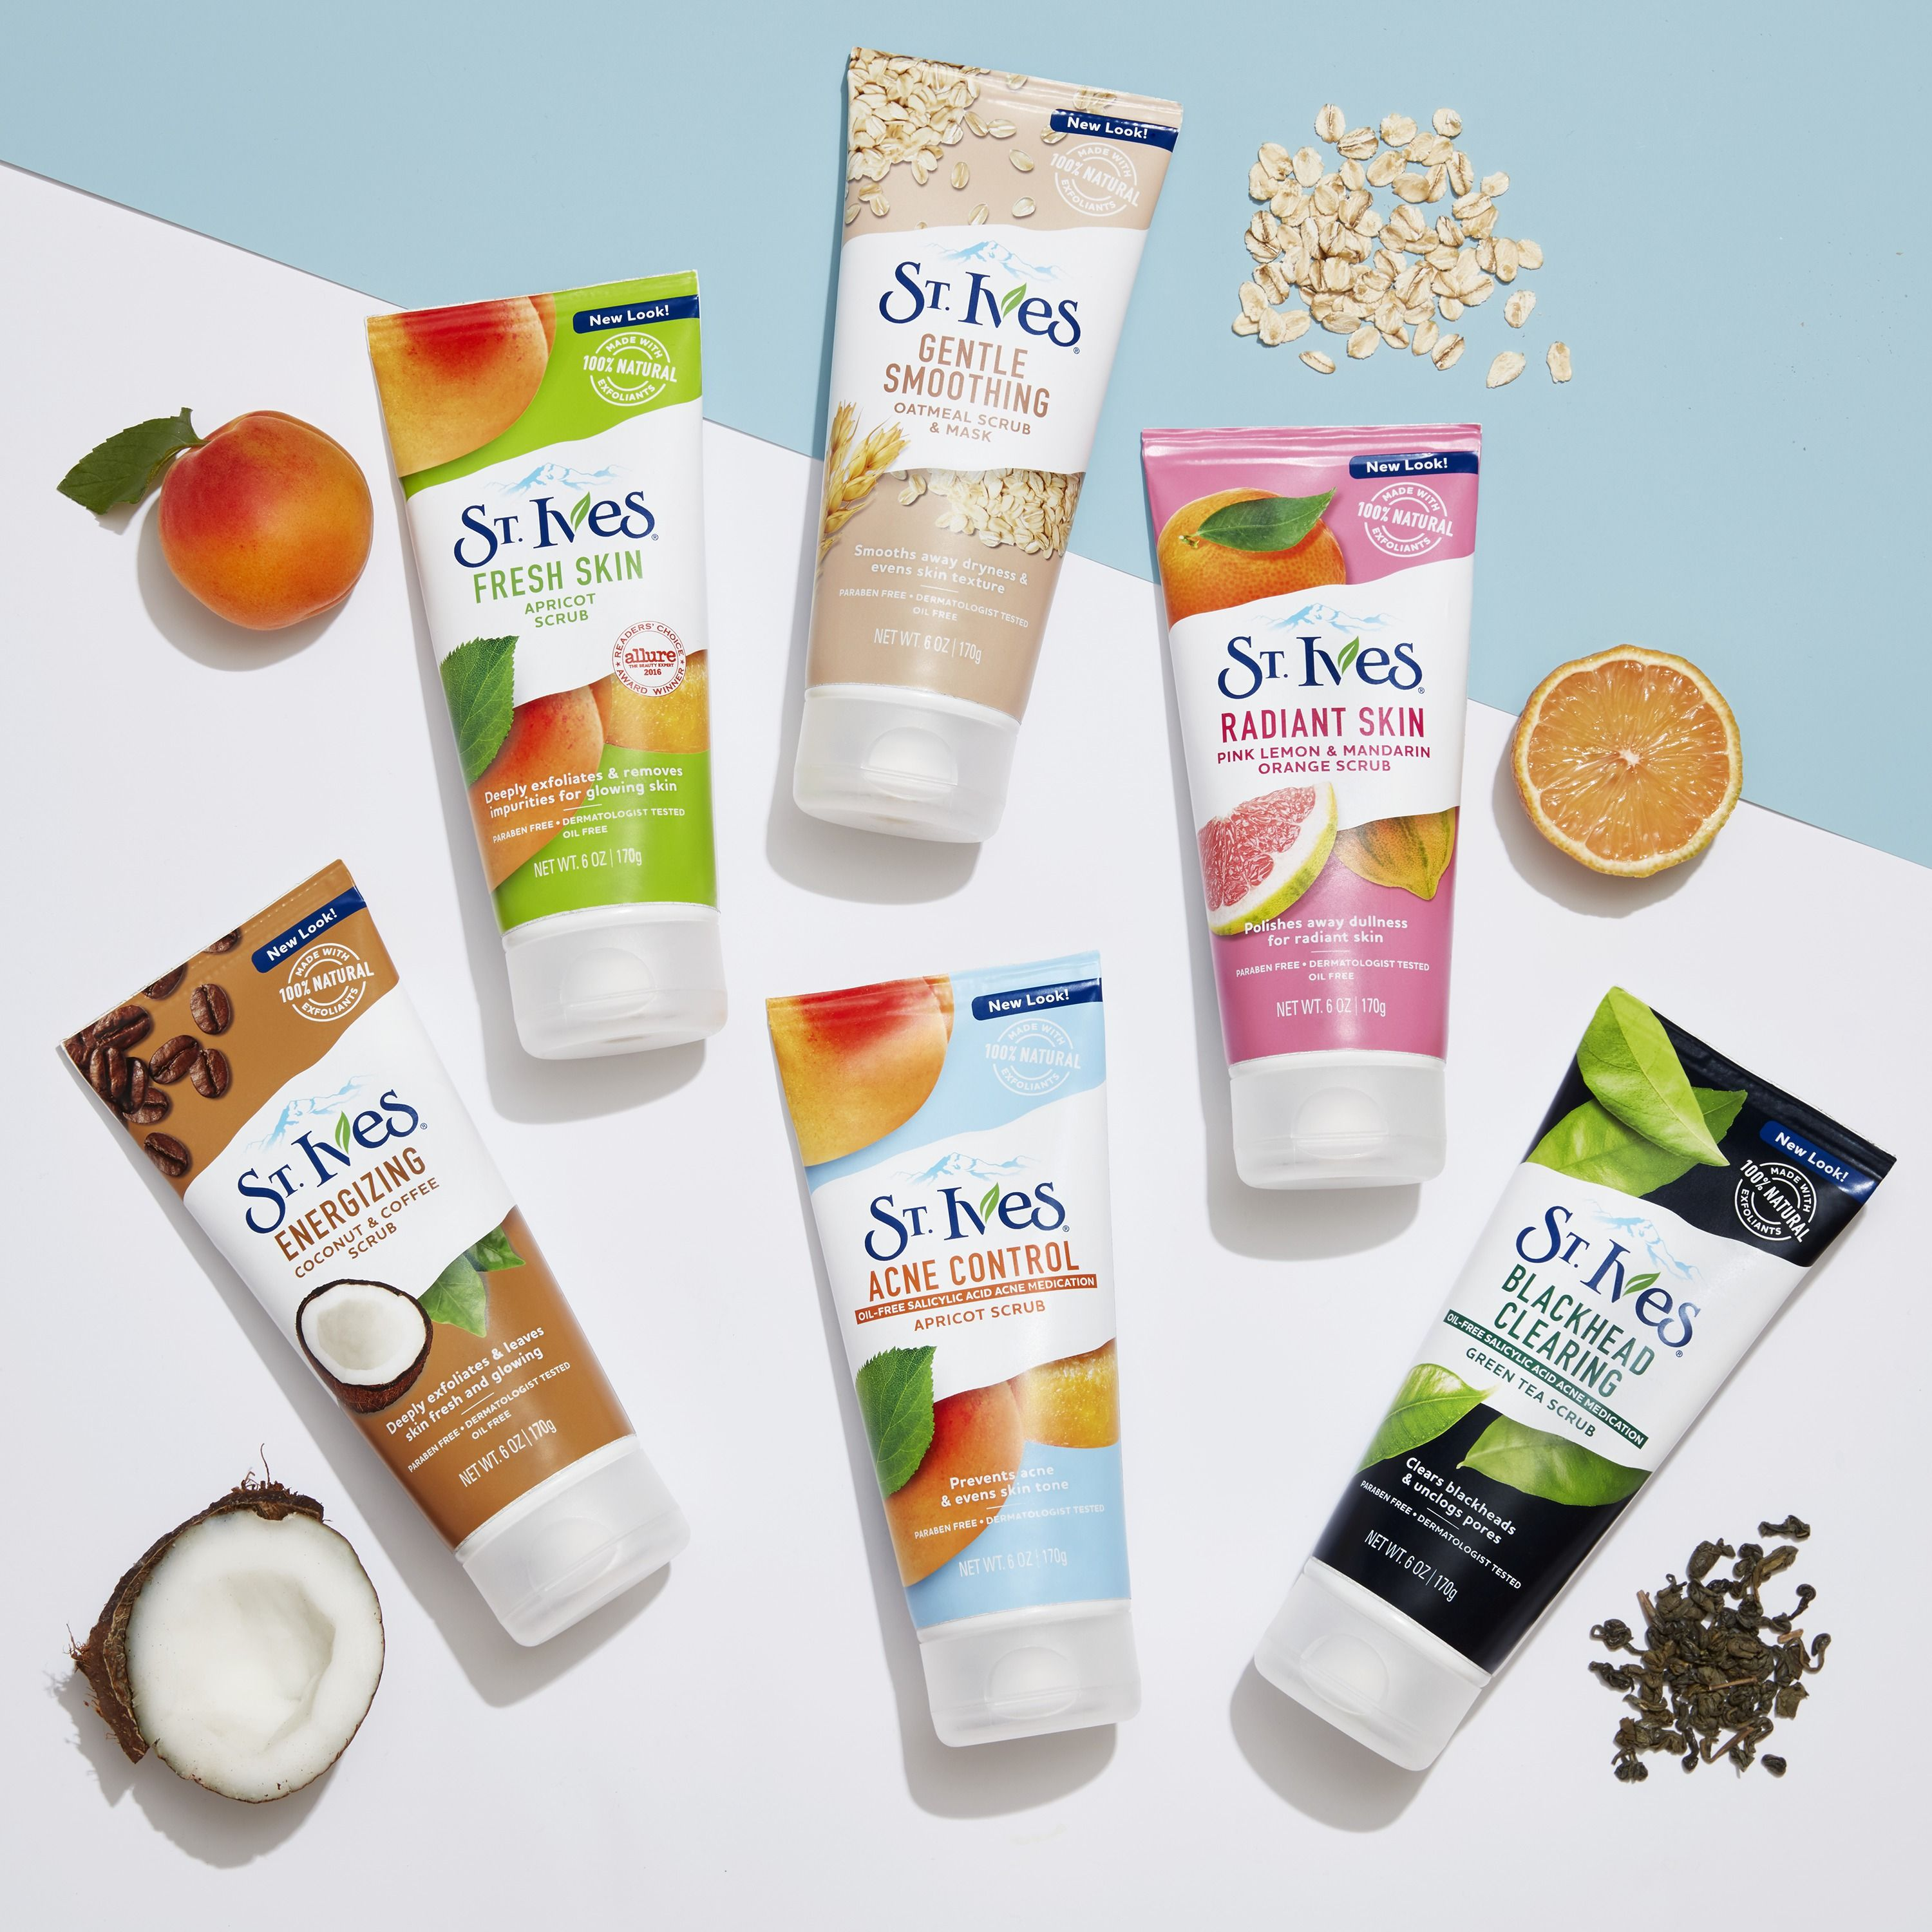 Where Can I Buy St Ives Apricot Scrub